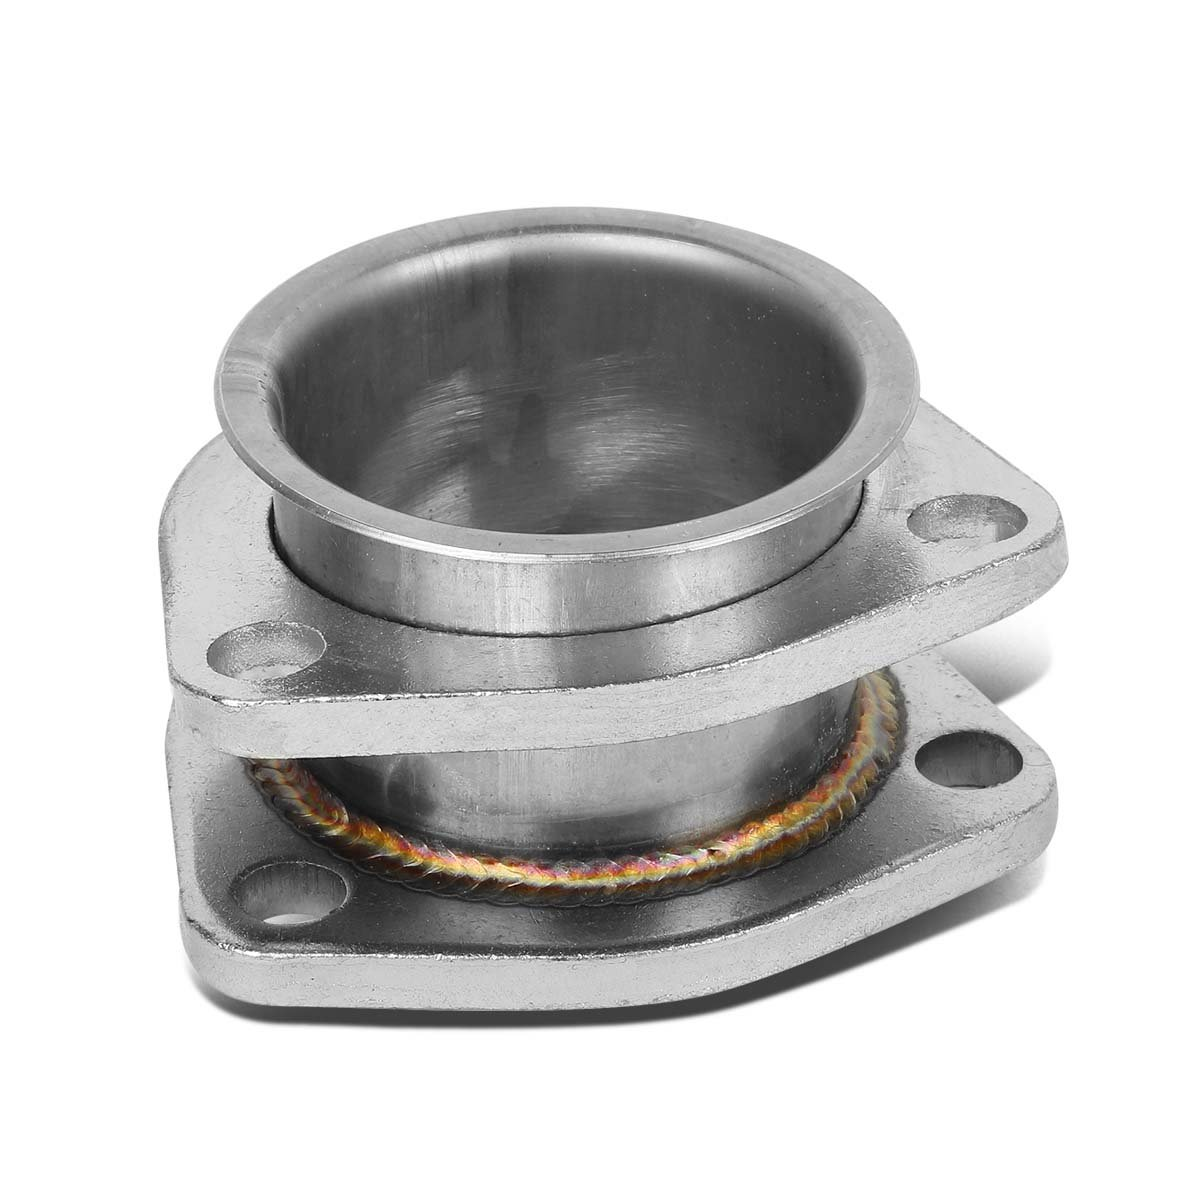 DNA Motoring ADTCBE225 2.25'' Extension Exhaust Flange Adaptor